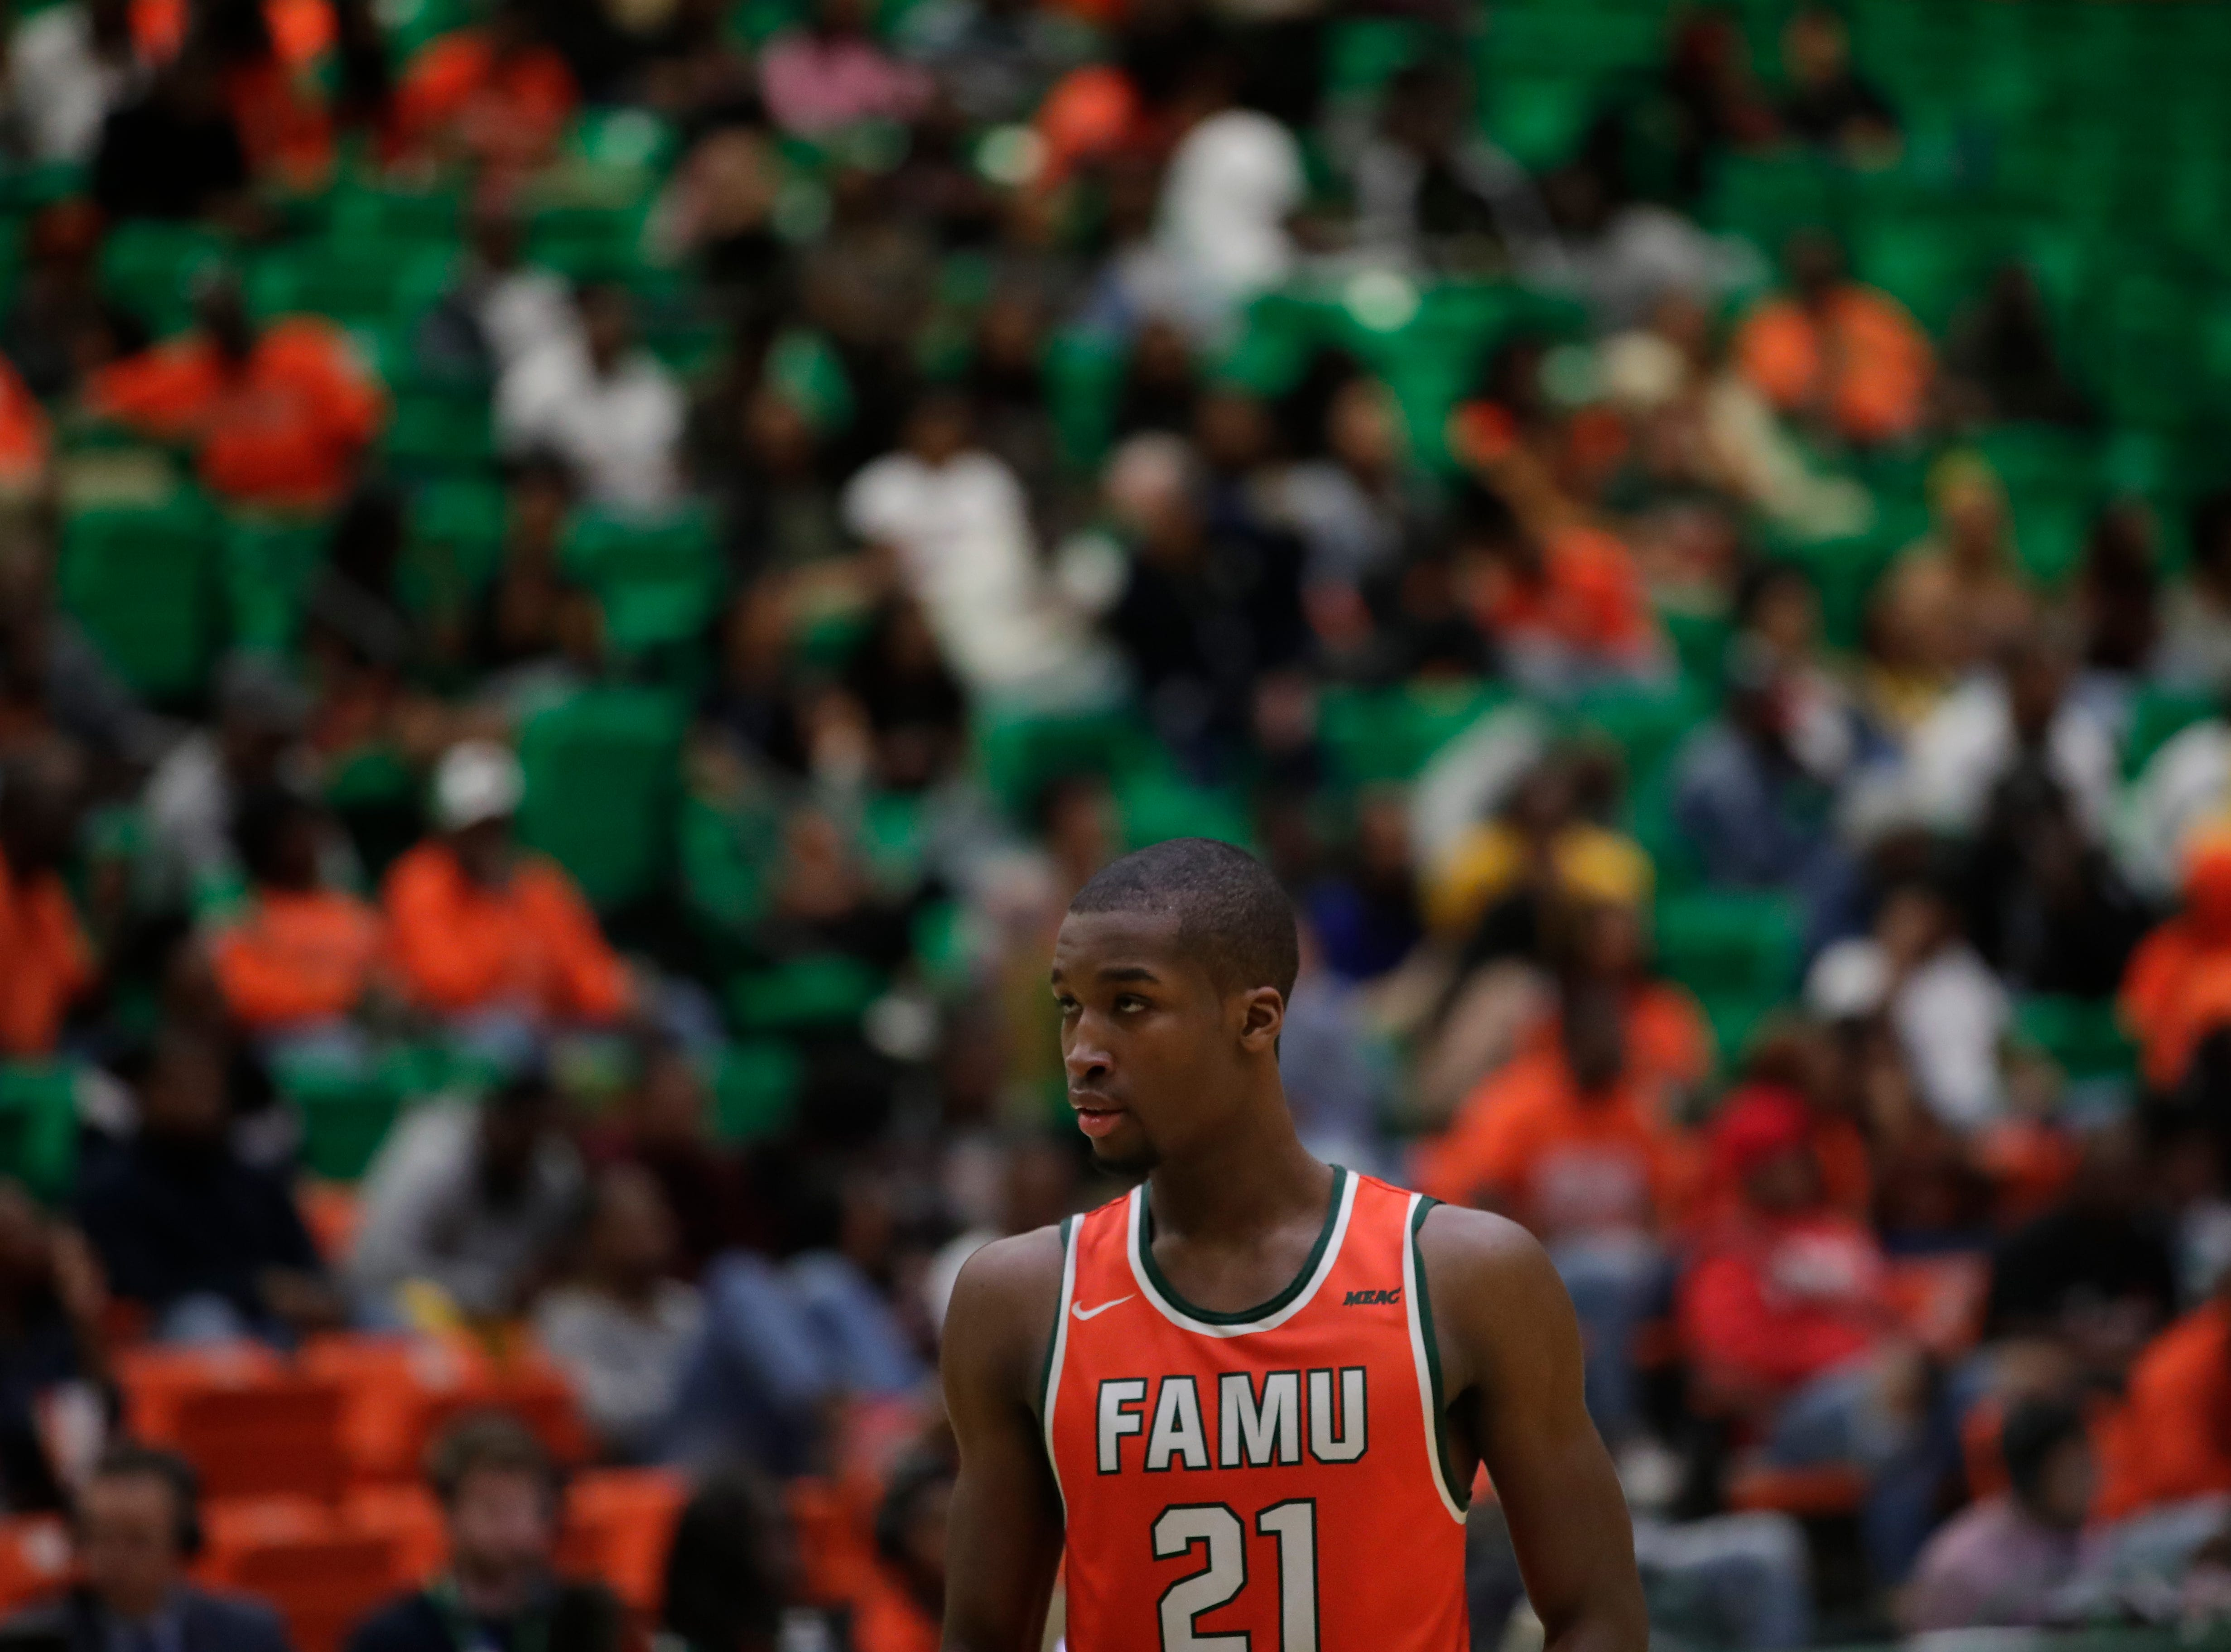 Florida A&M Rattlers guard Justin Ravenel (21) prepares to shoot two free throws after a technical foul was called on his opponents during a game between FAMU and North Carolina Central at the Alfred Lawson Jr. Multipurpose Center Monday, Feb. 4, 2019.